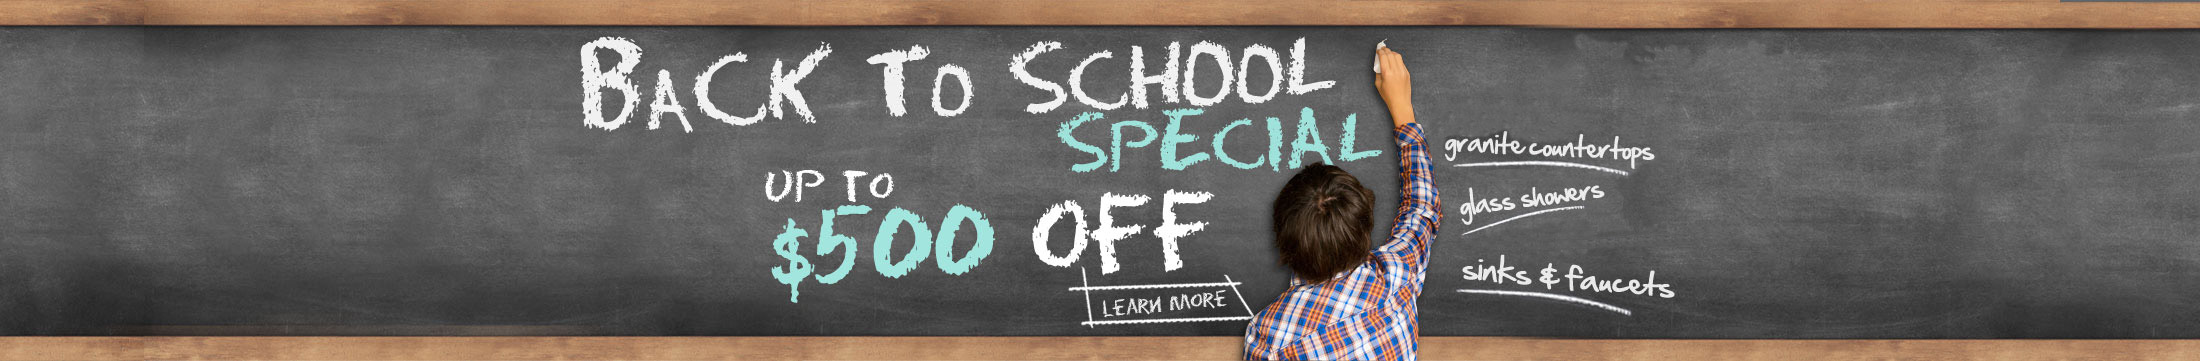 2017-back-to-school-special